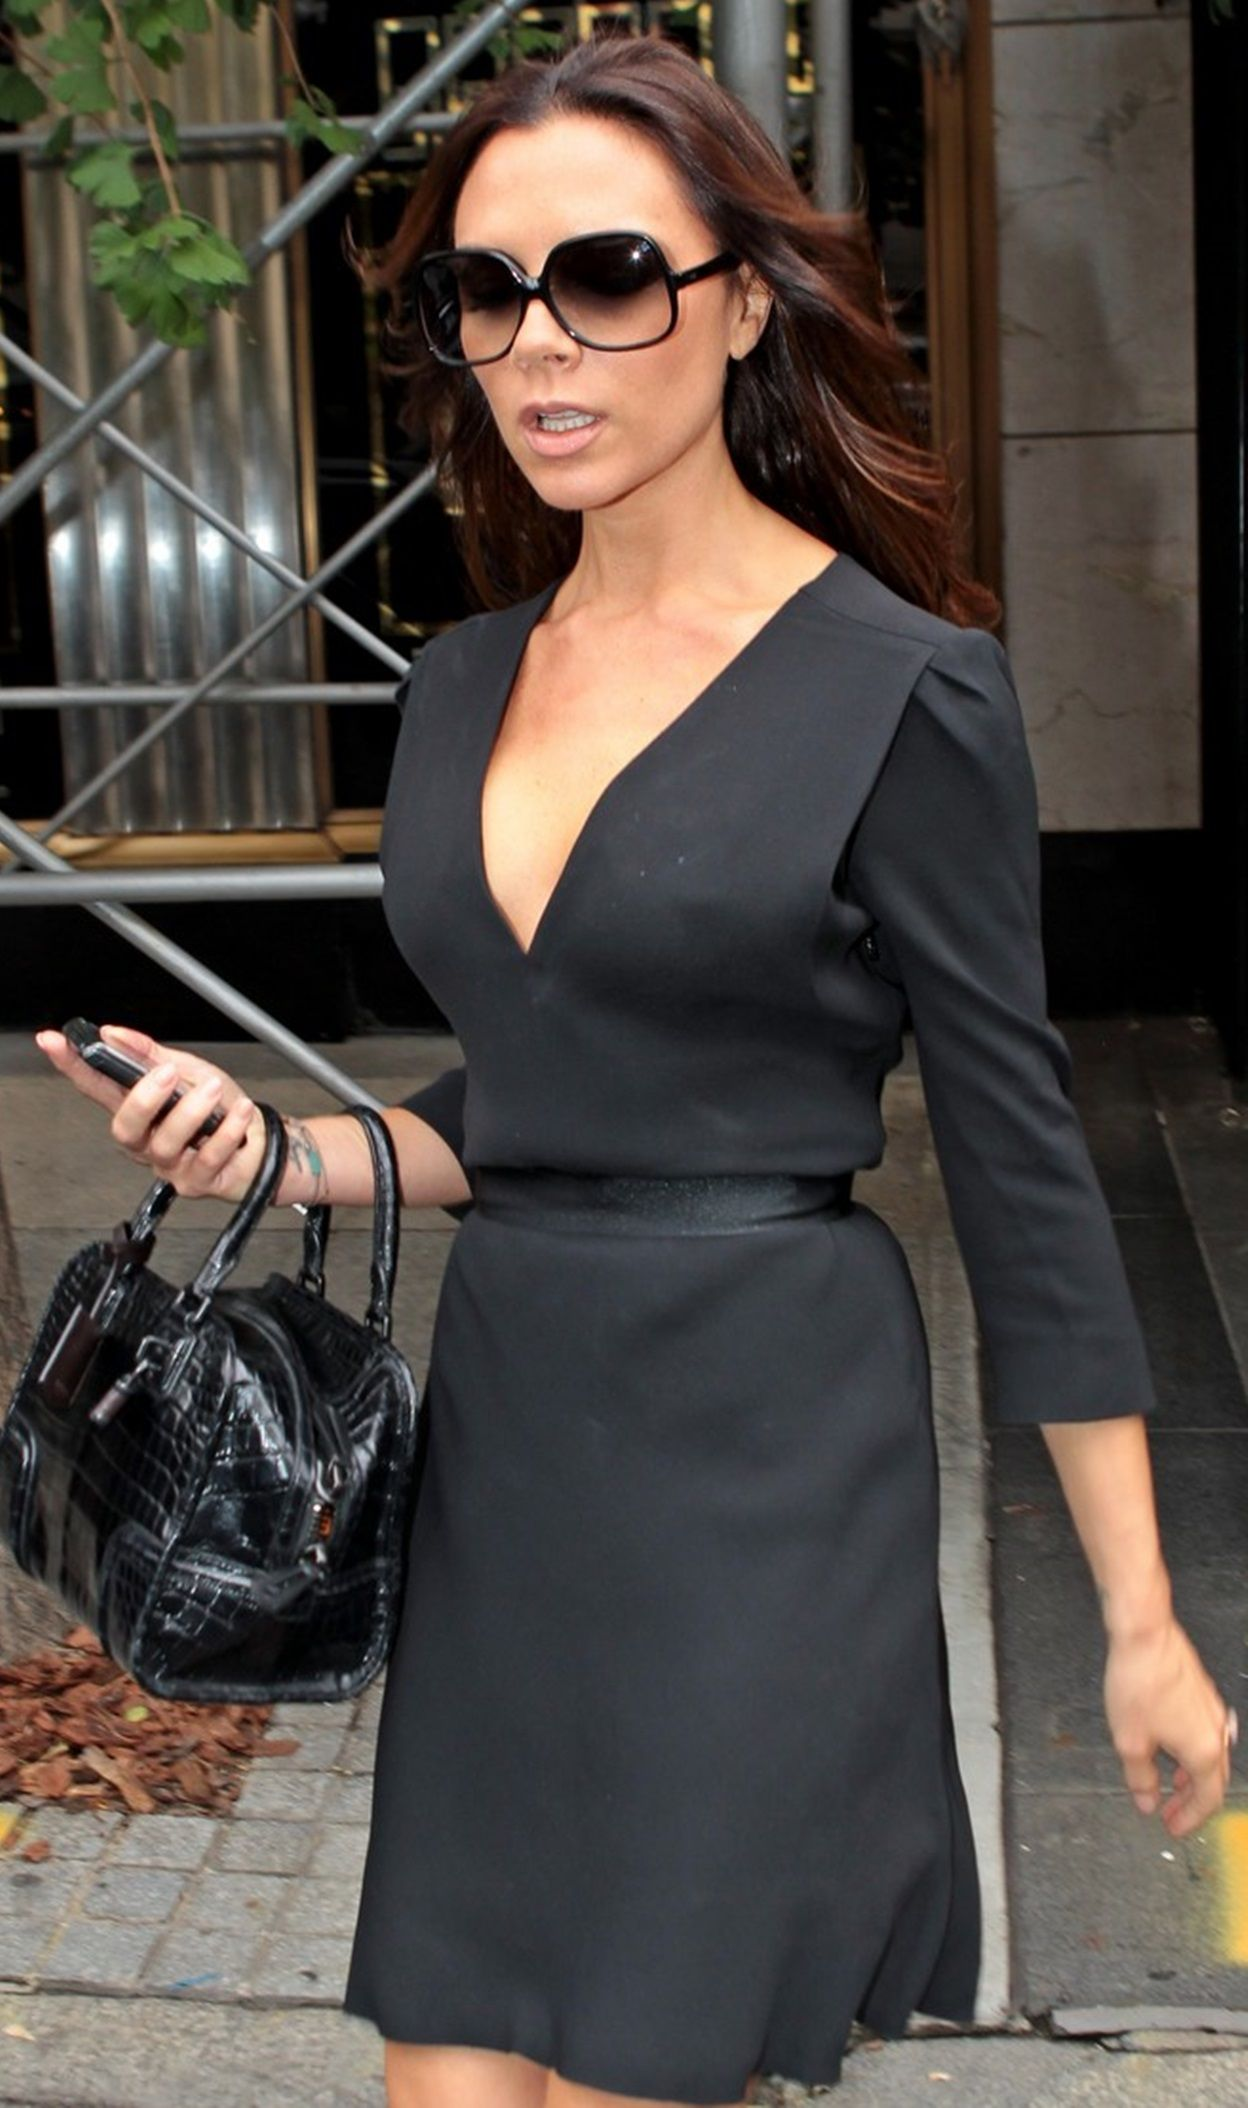 Black dress victoria beckham - Find This Pin And More On Clothes Inspiration Little Cute Black Dress Victoria Beckham